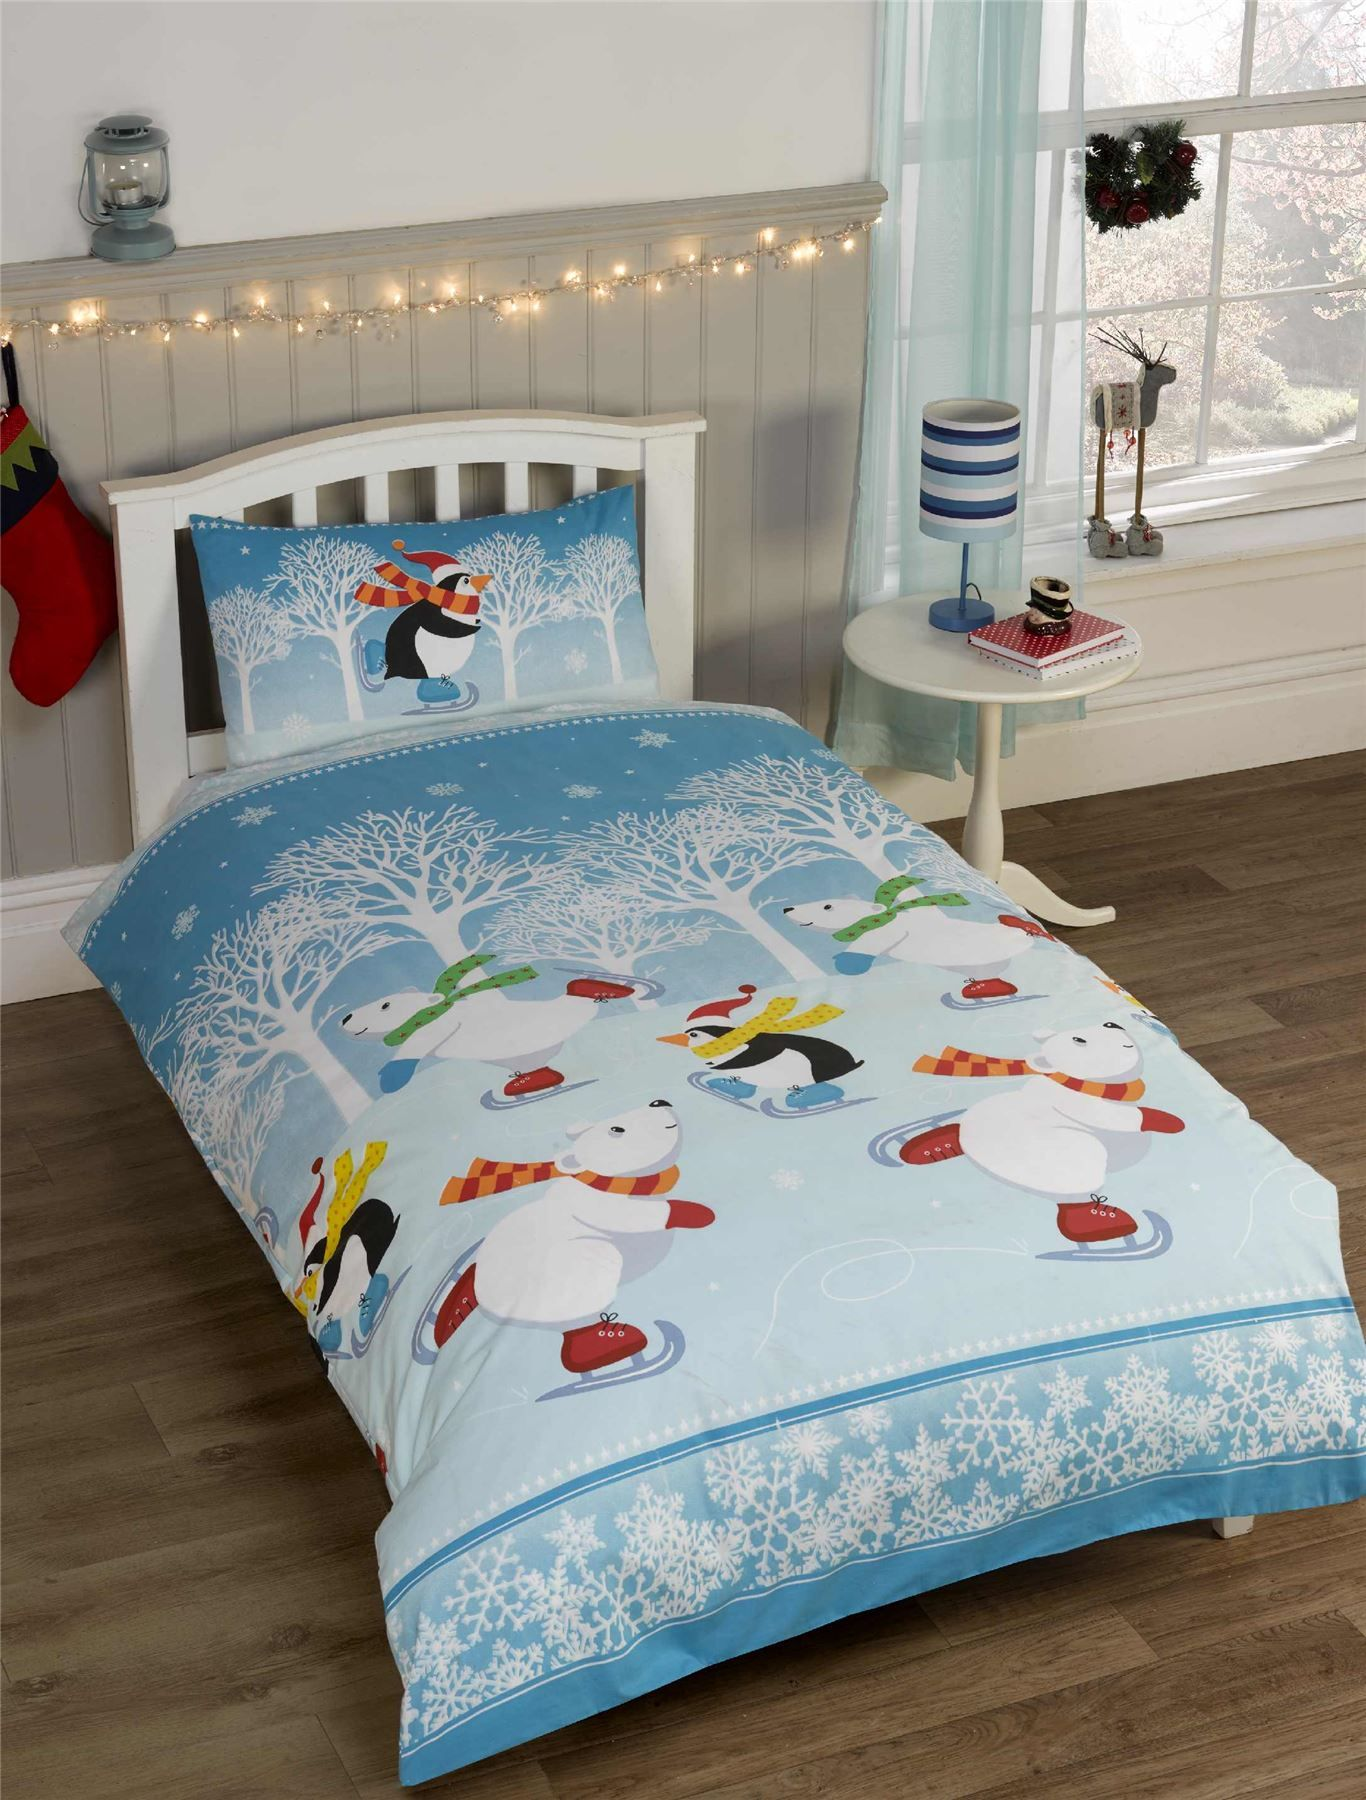 These duvet cover sets would make a great Christmas gift ...